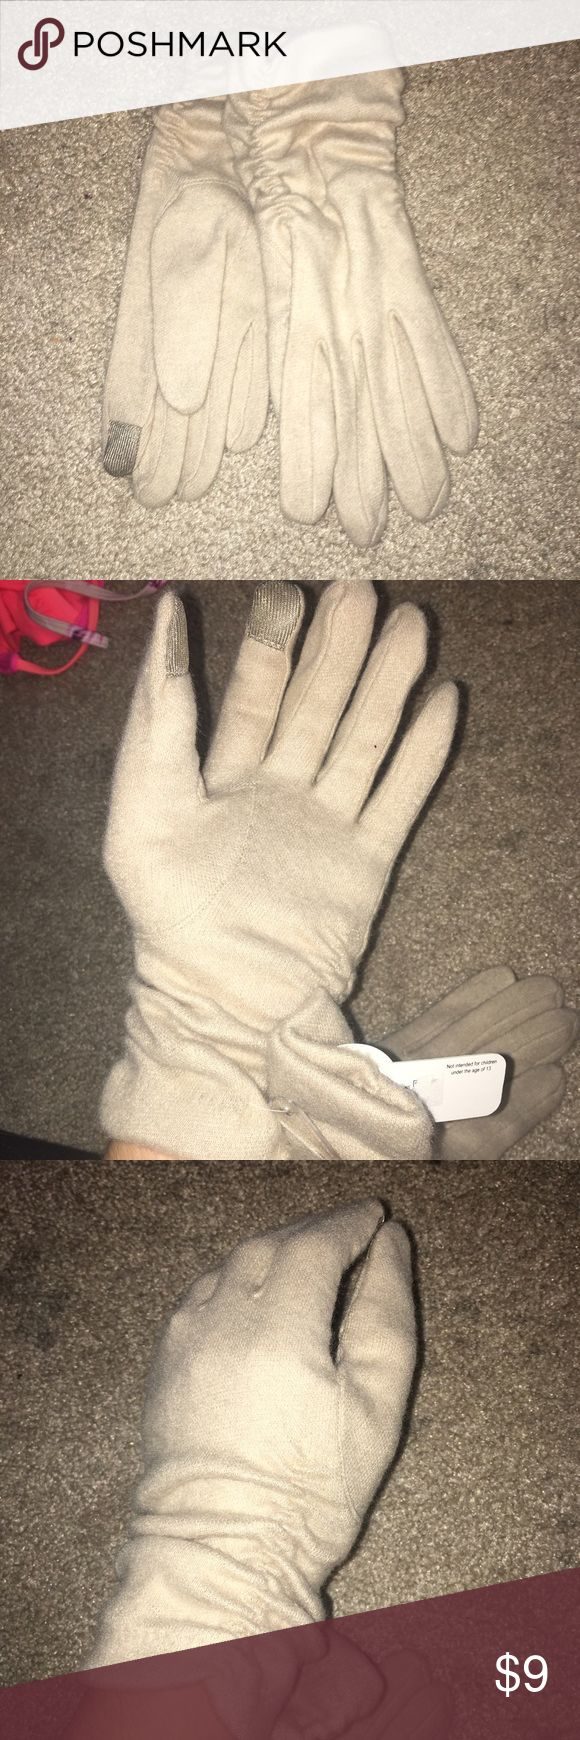 Text friendly soft hand gloves BRAND new cream hand gloves, super soft and the best part is u can use ur smart phone while wearing them Accessories Gloves & Mittens